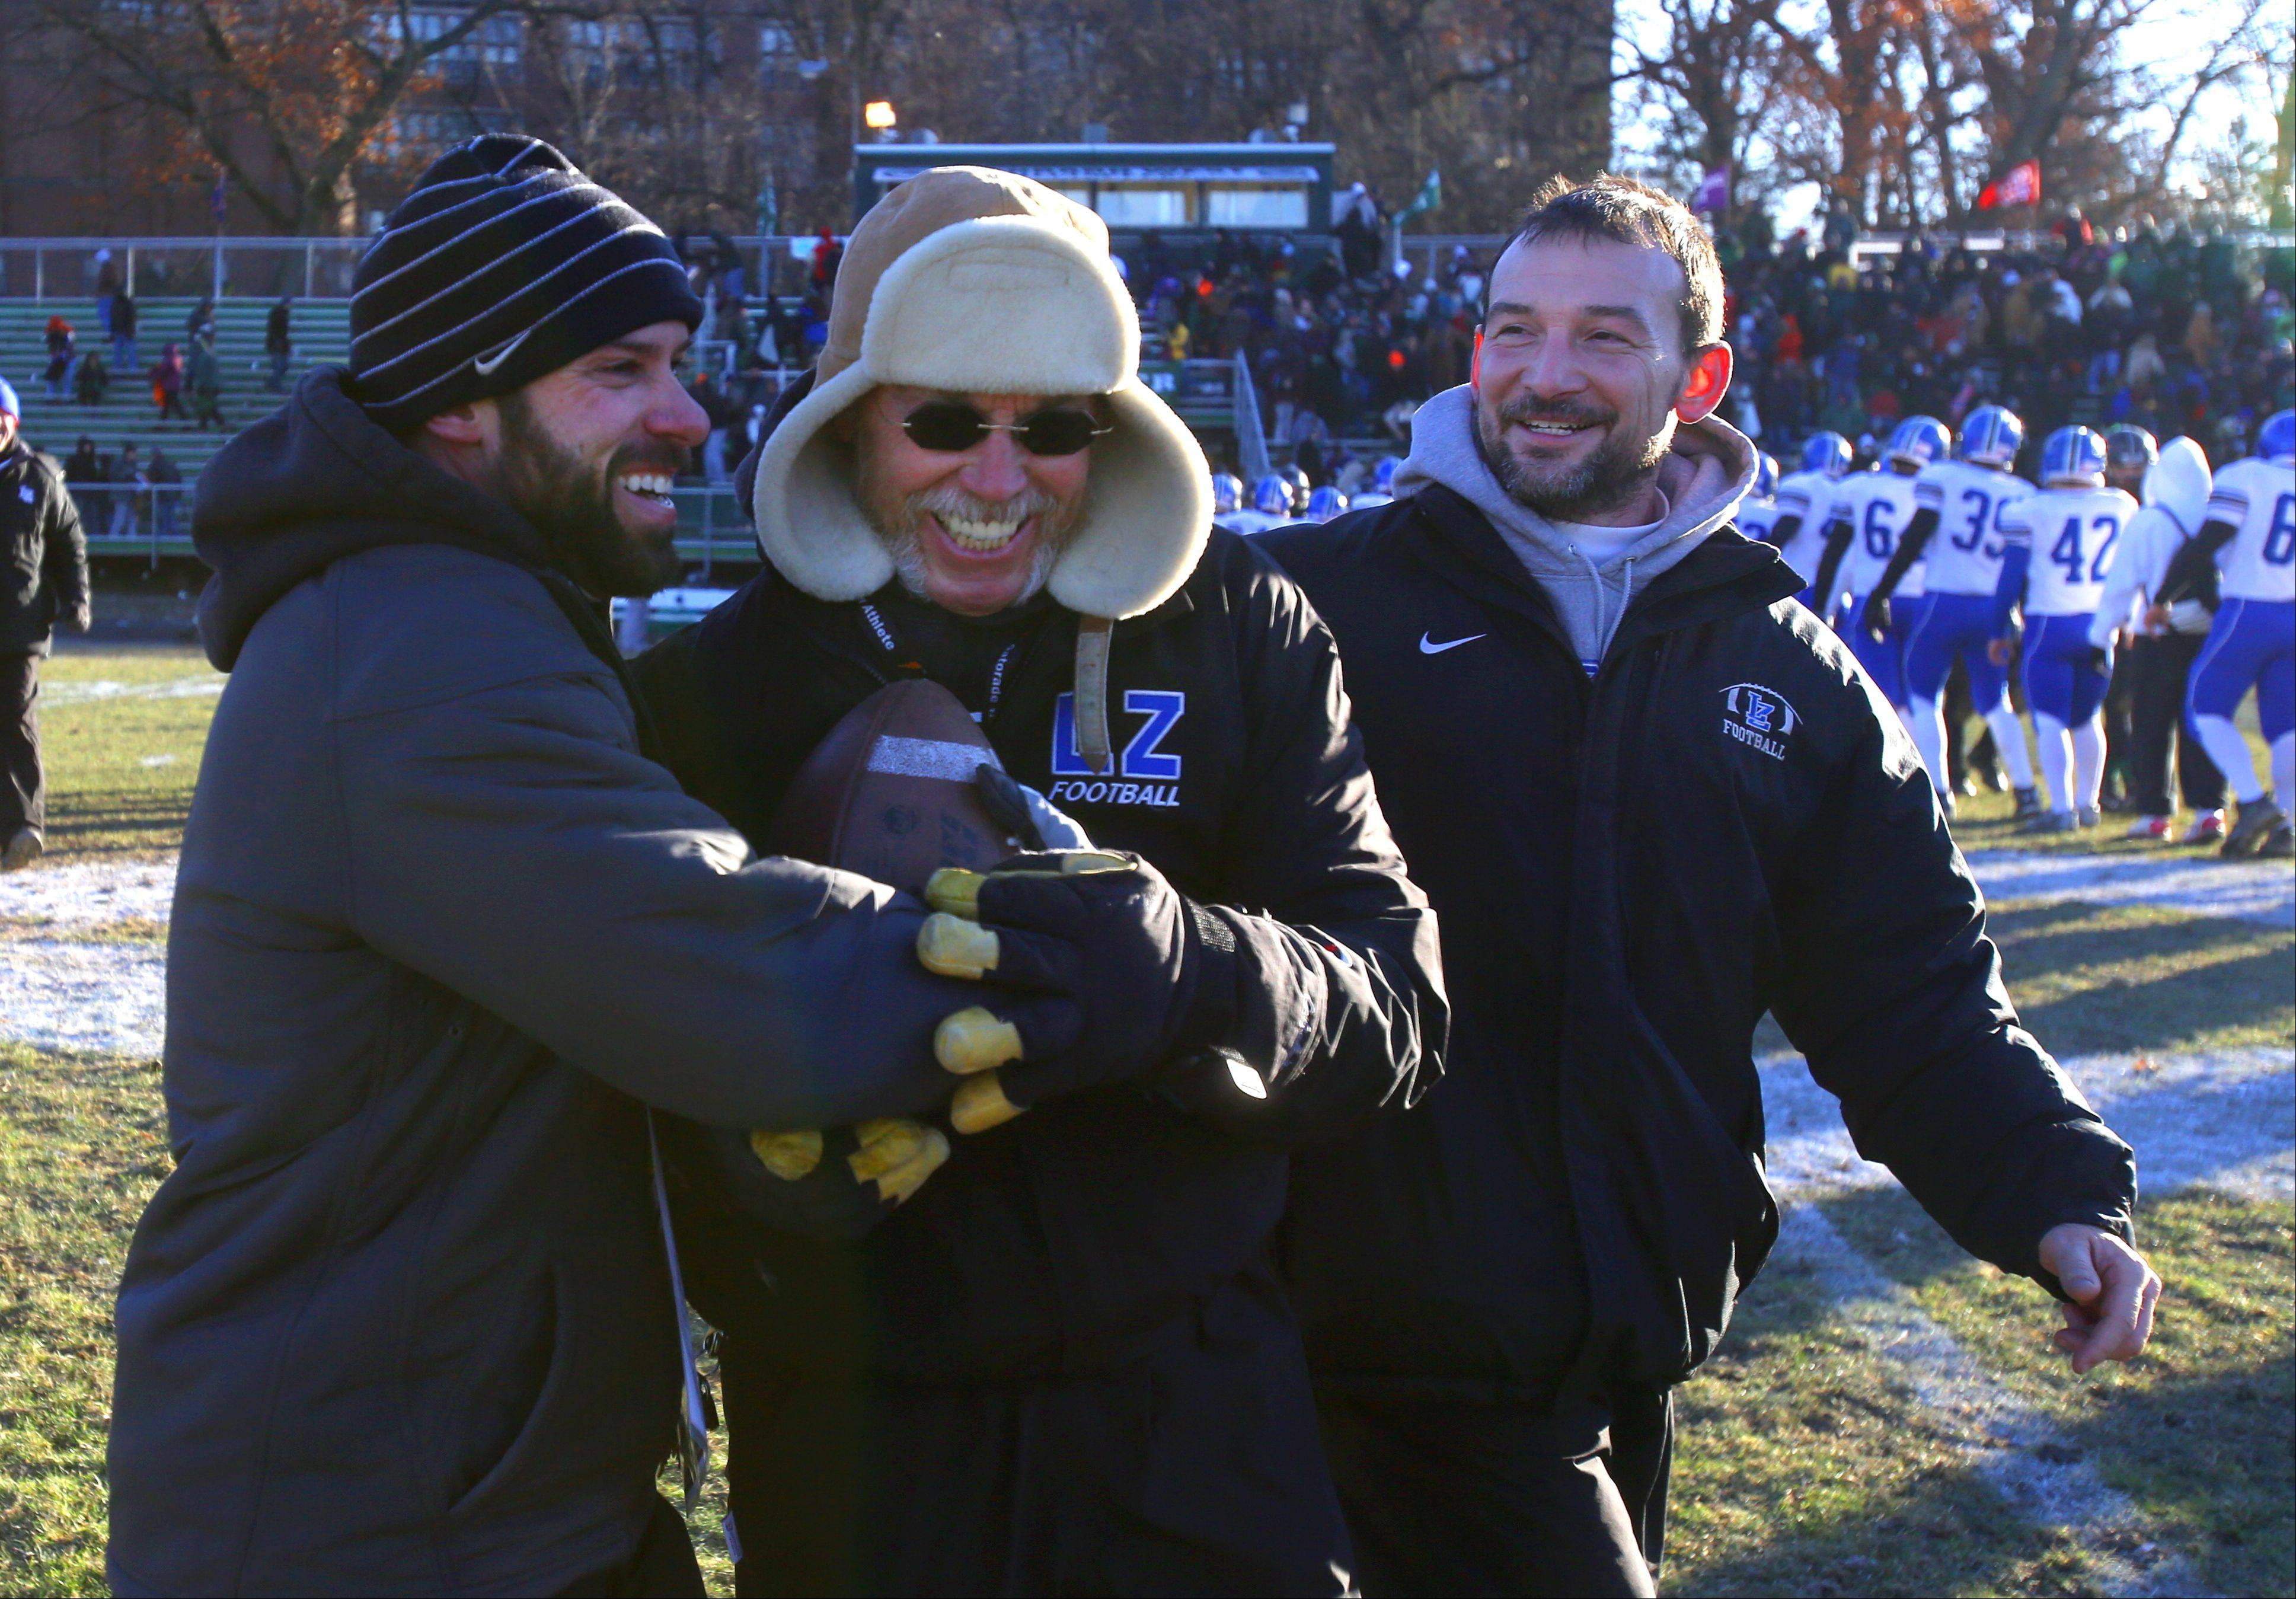 Lake Zurich coaching staff celebrates a 16-7 win over Glenbard West during the Class 7A Semifinal Football Playoffs in Glen Ellyn.